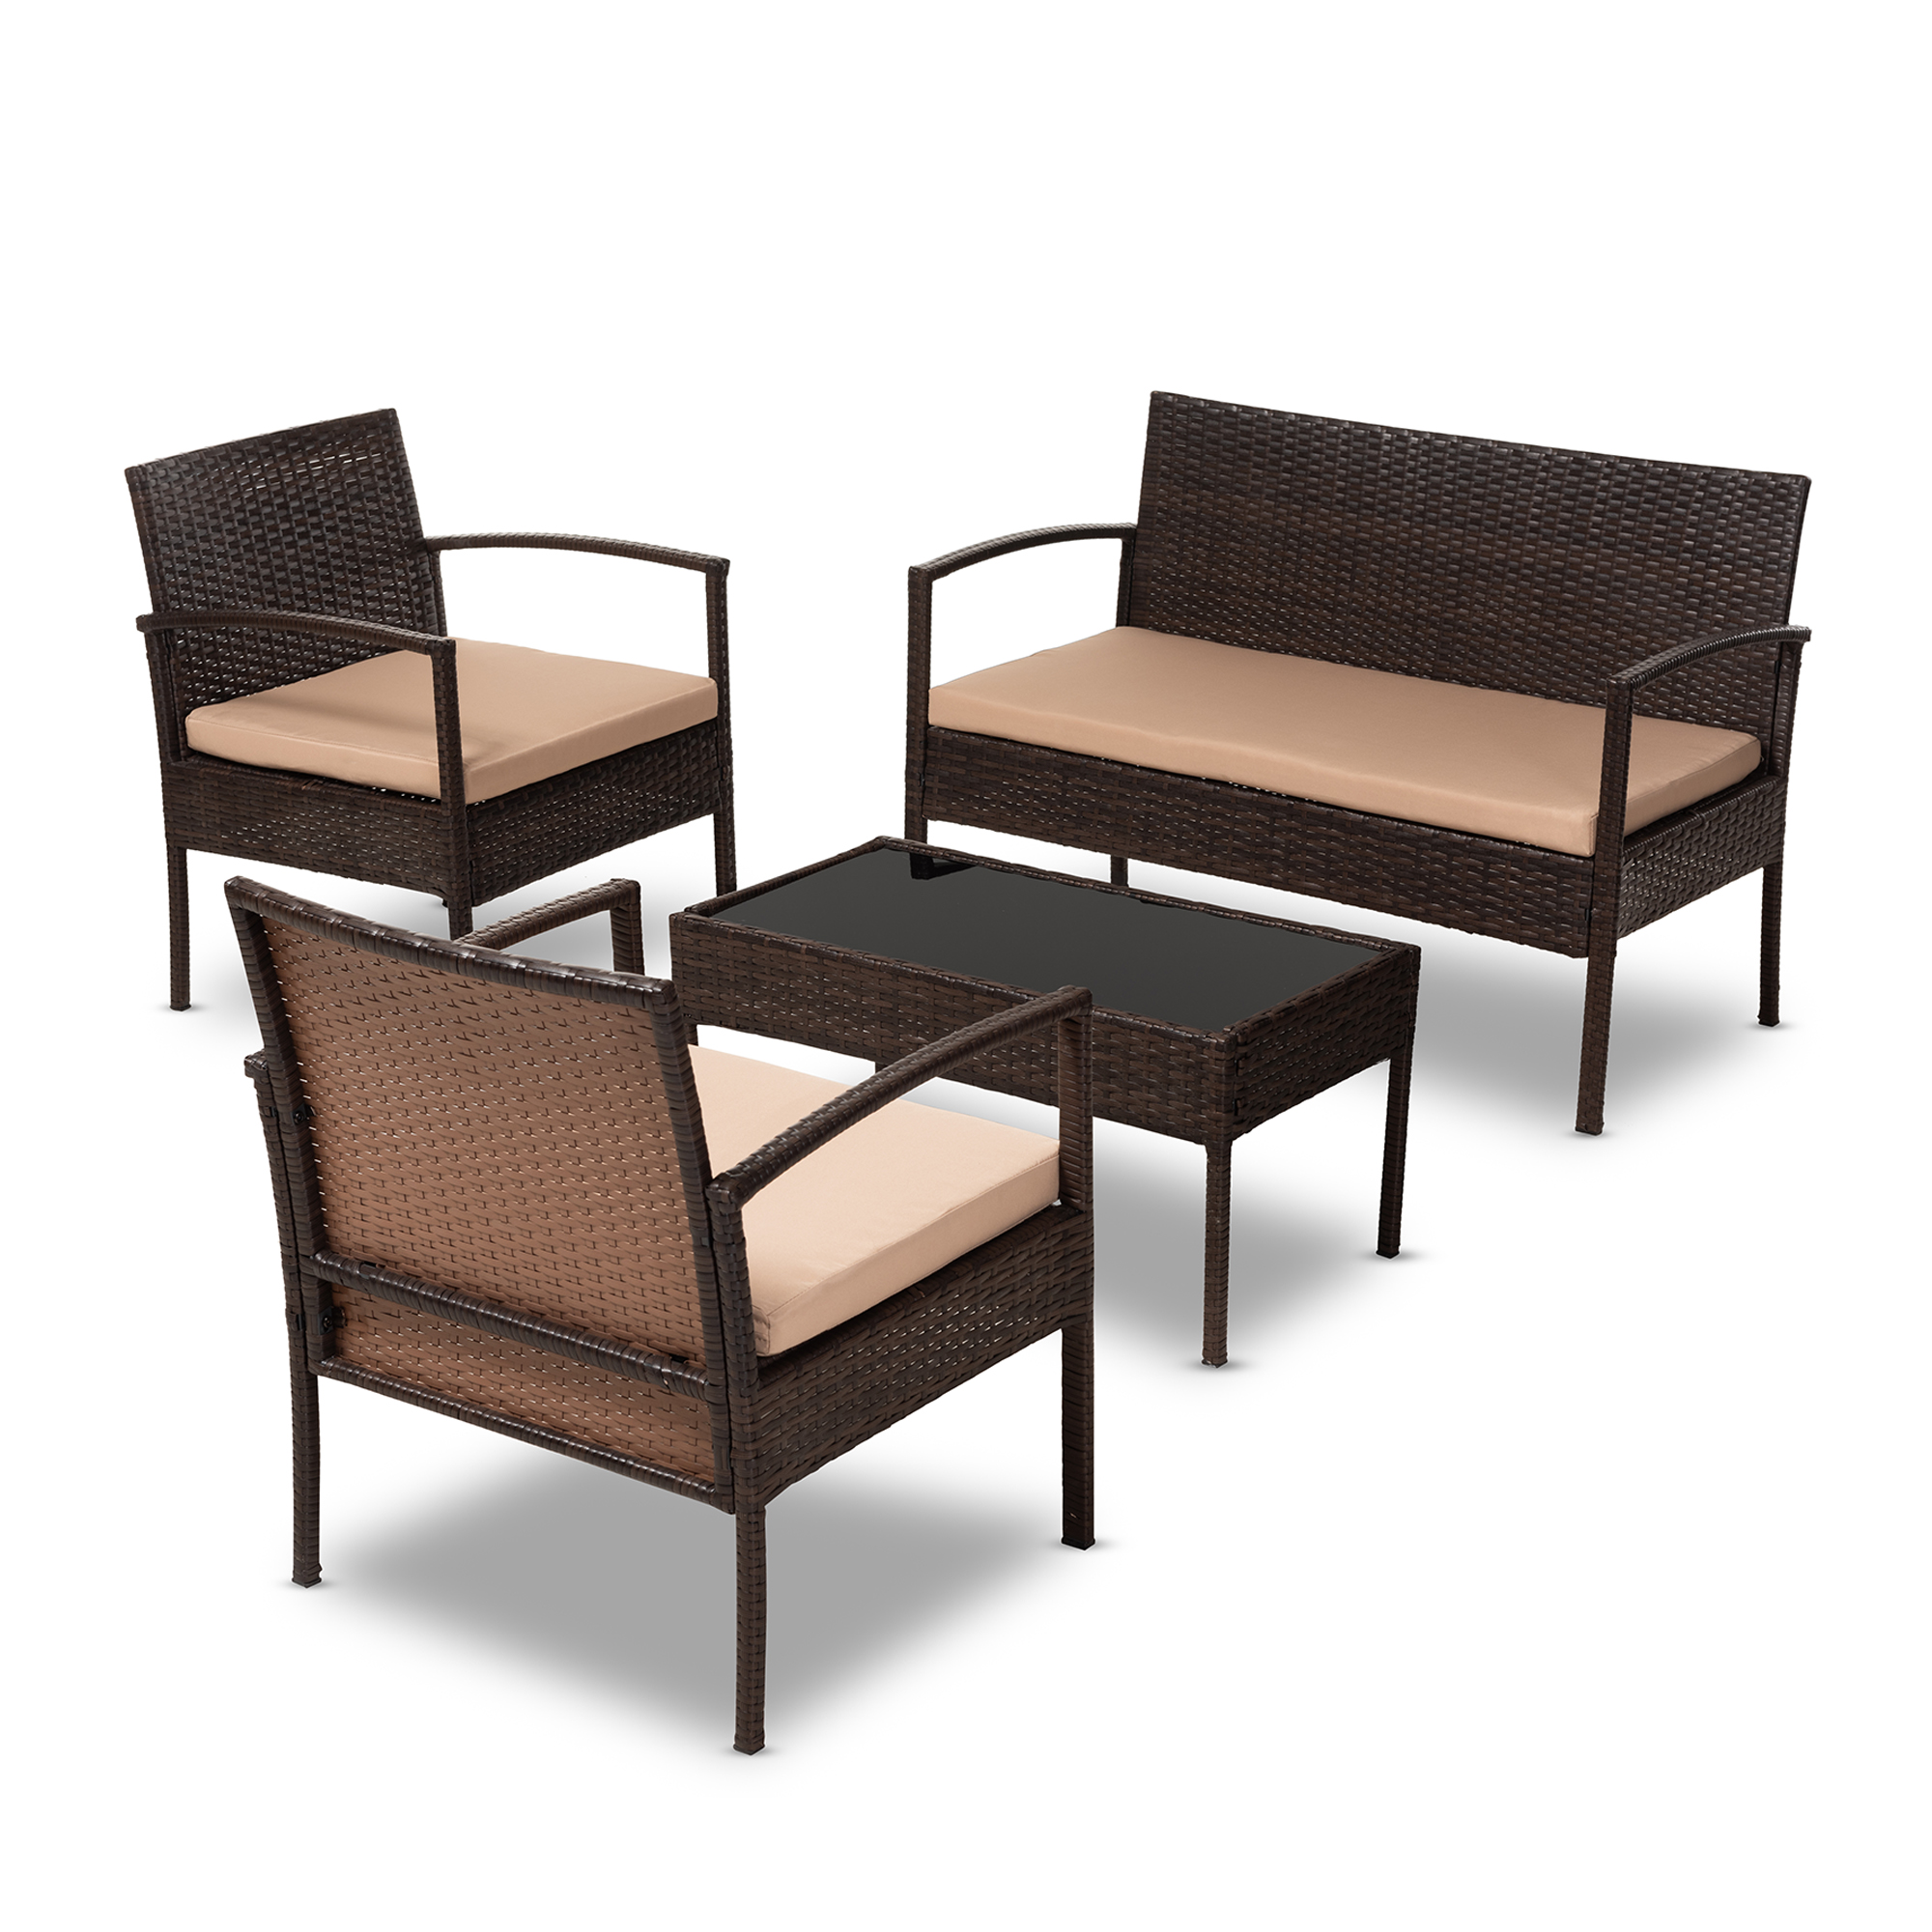 Baxton Studio Aronne Modern And Contemporary Beige Fabric Upholstered Dark Brown Rattan 4 Piece Outdoor Patio Lounge Set